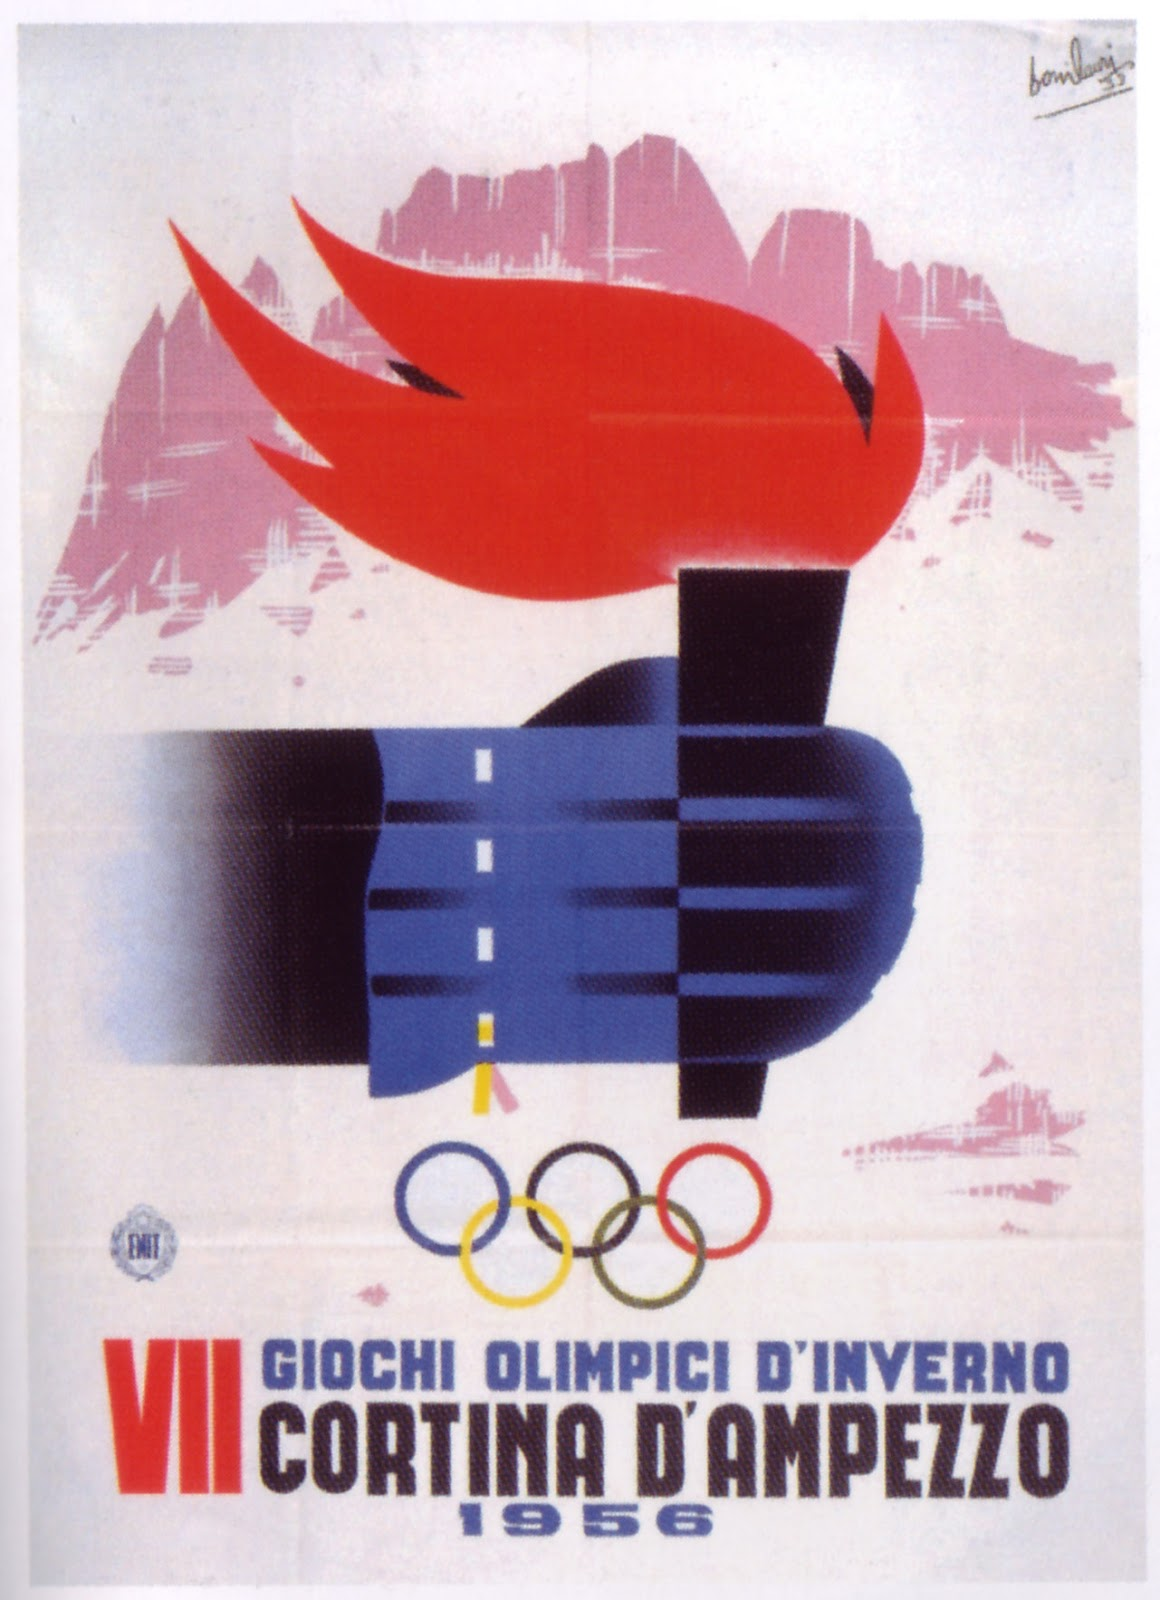 Advertising poster of the Winter Olympic Games in Cortina d'Ampezzo (Italy), 1956